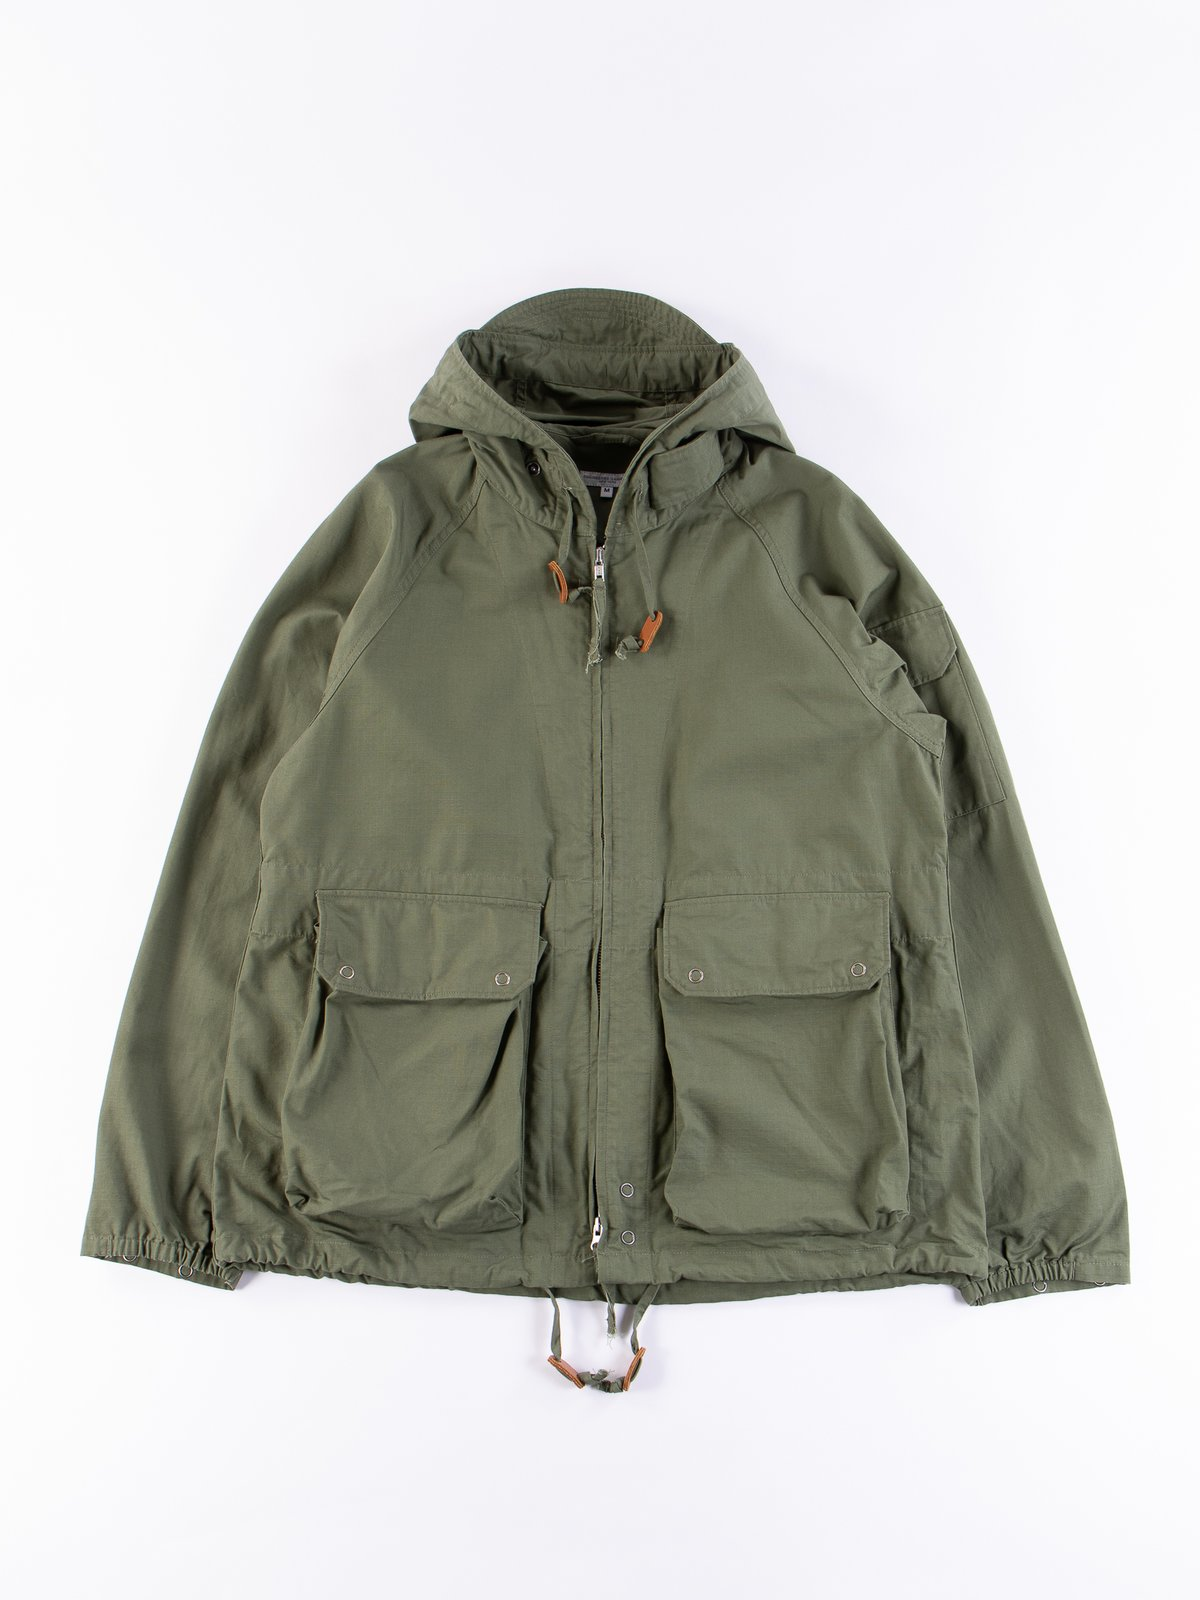 Olive Cotton Ripstop Atlantic Parka - Image 1